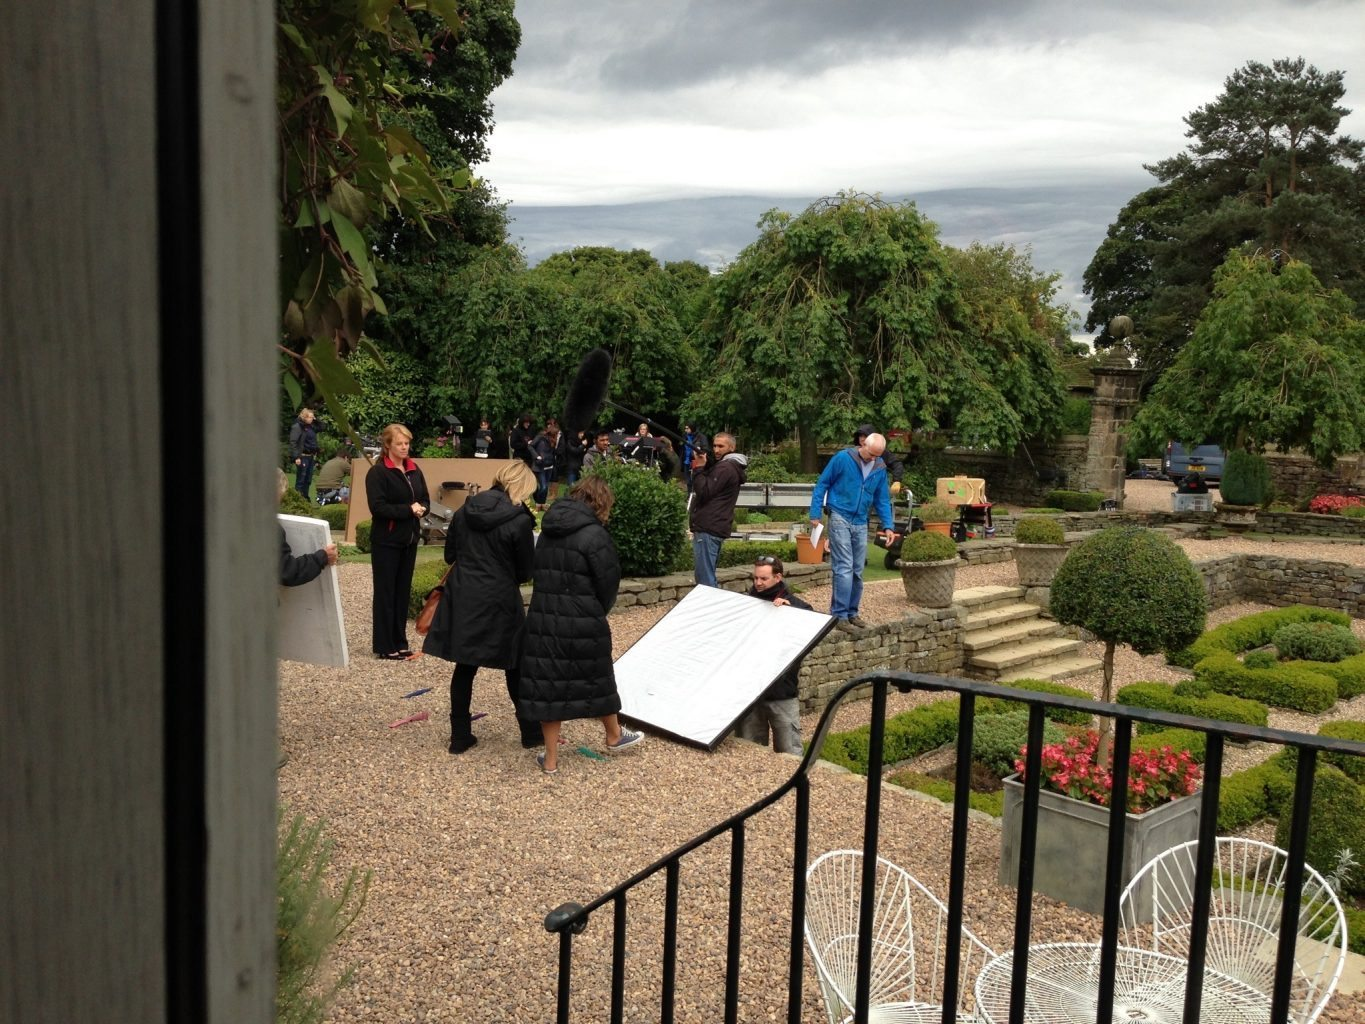 Meeting and film venue Holdsworth House